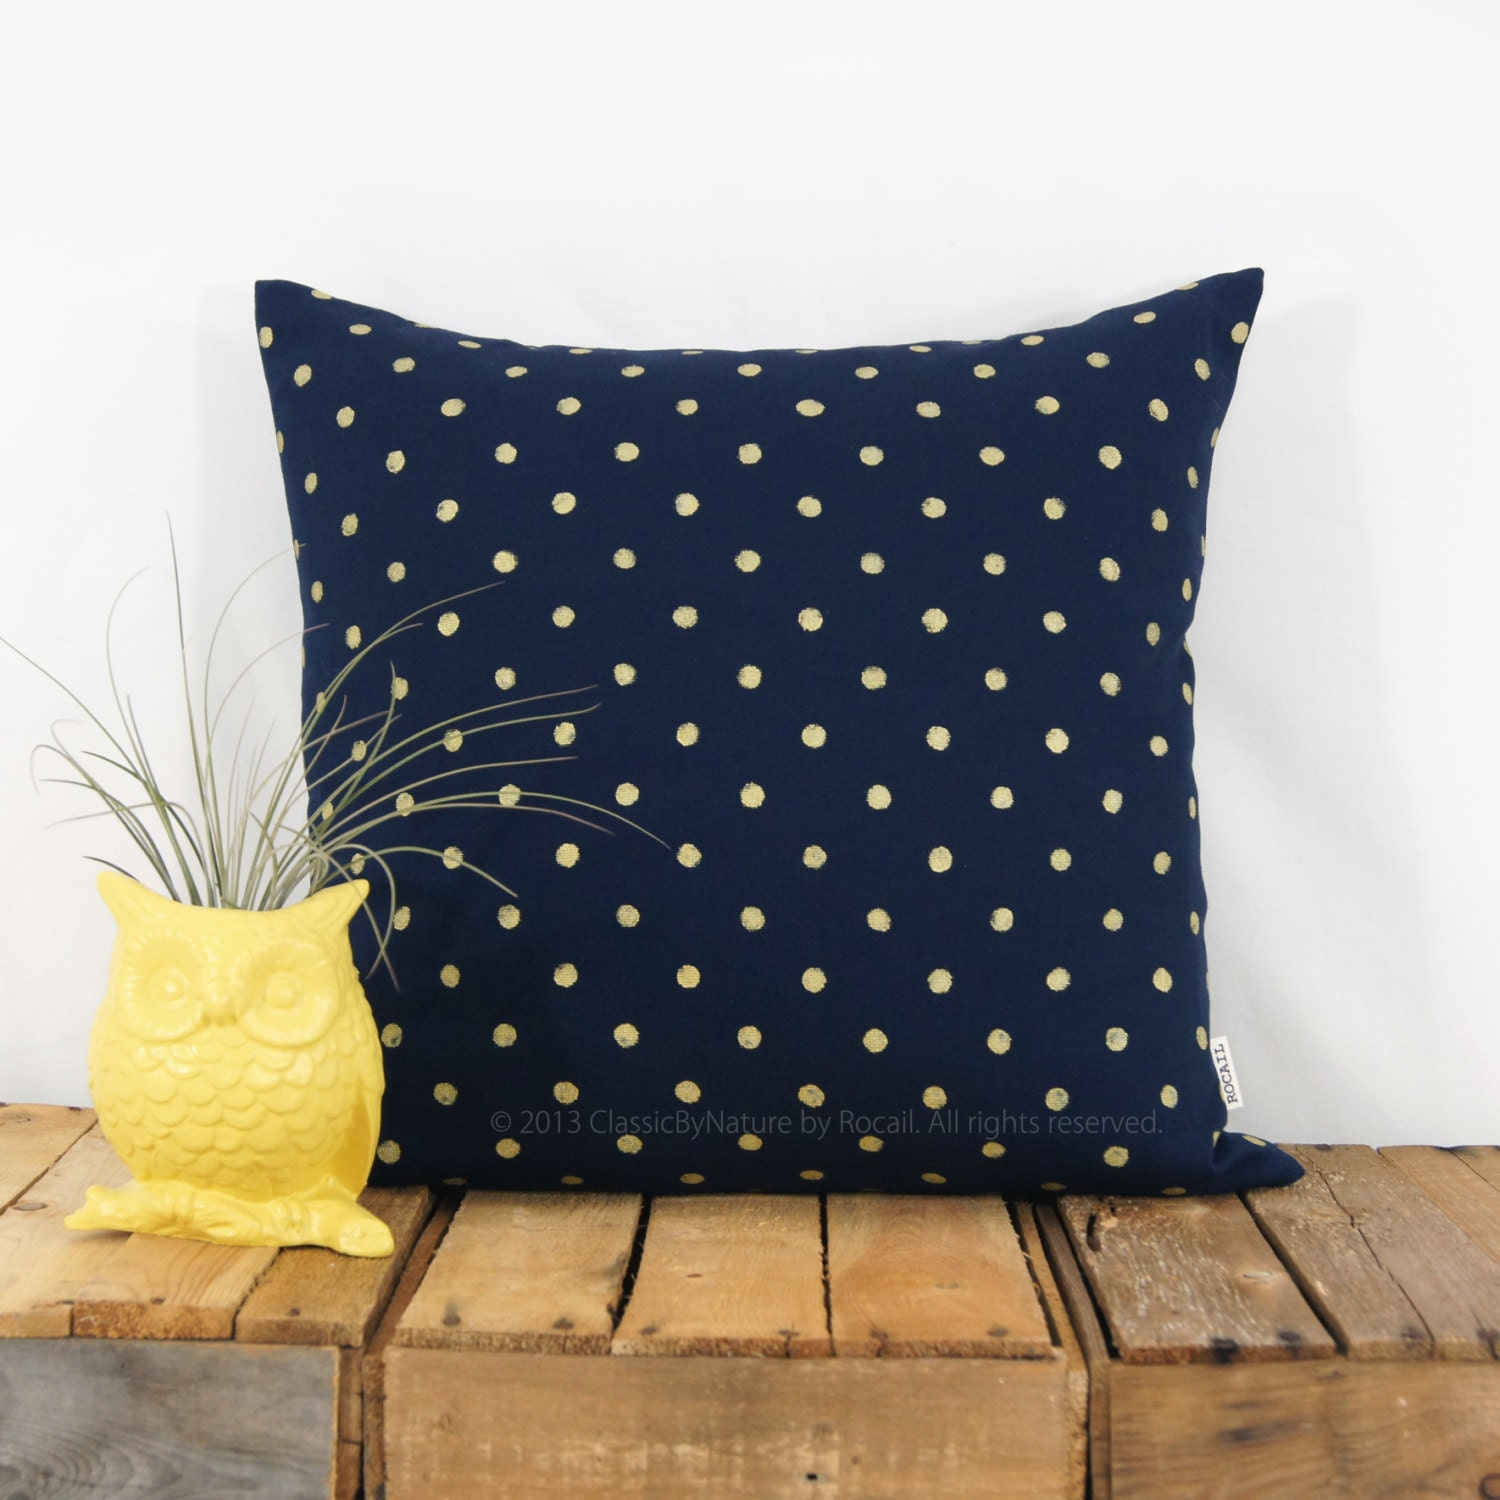 Gold and Navy Decorative Pillow Polka Dots by ClassicByNature